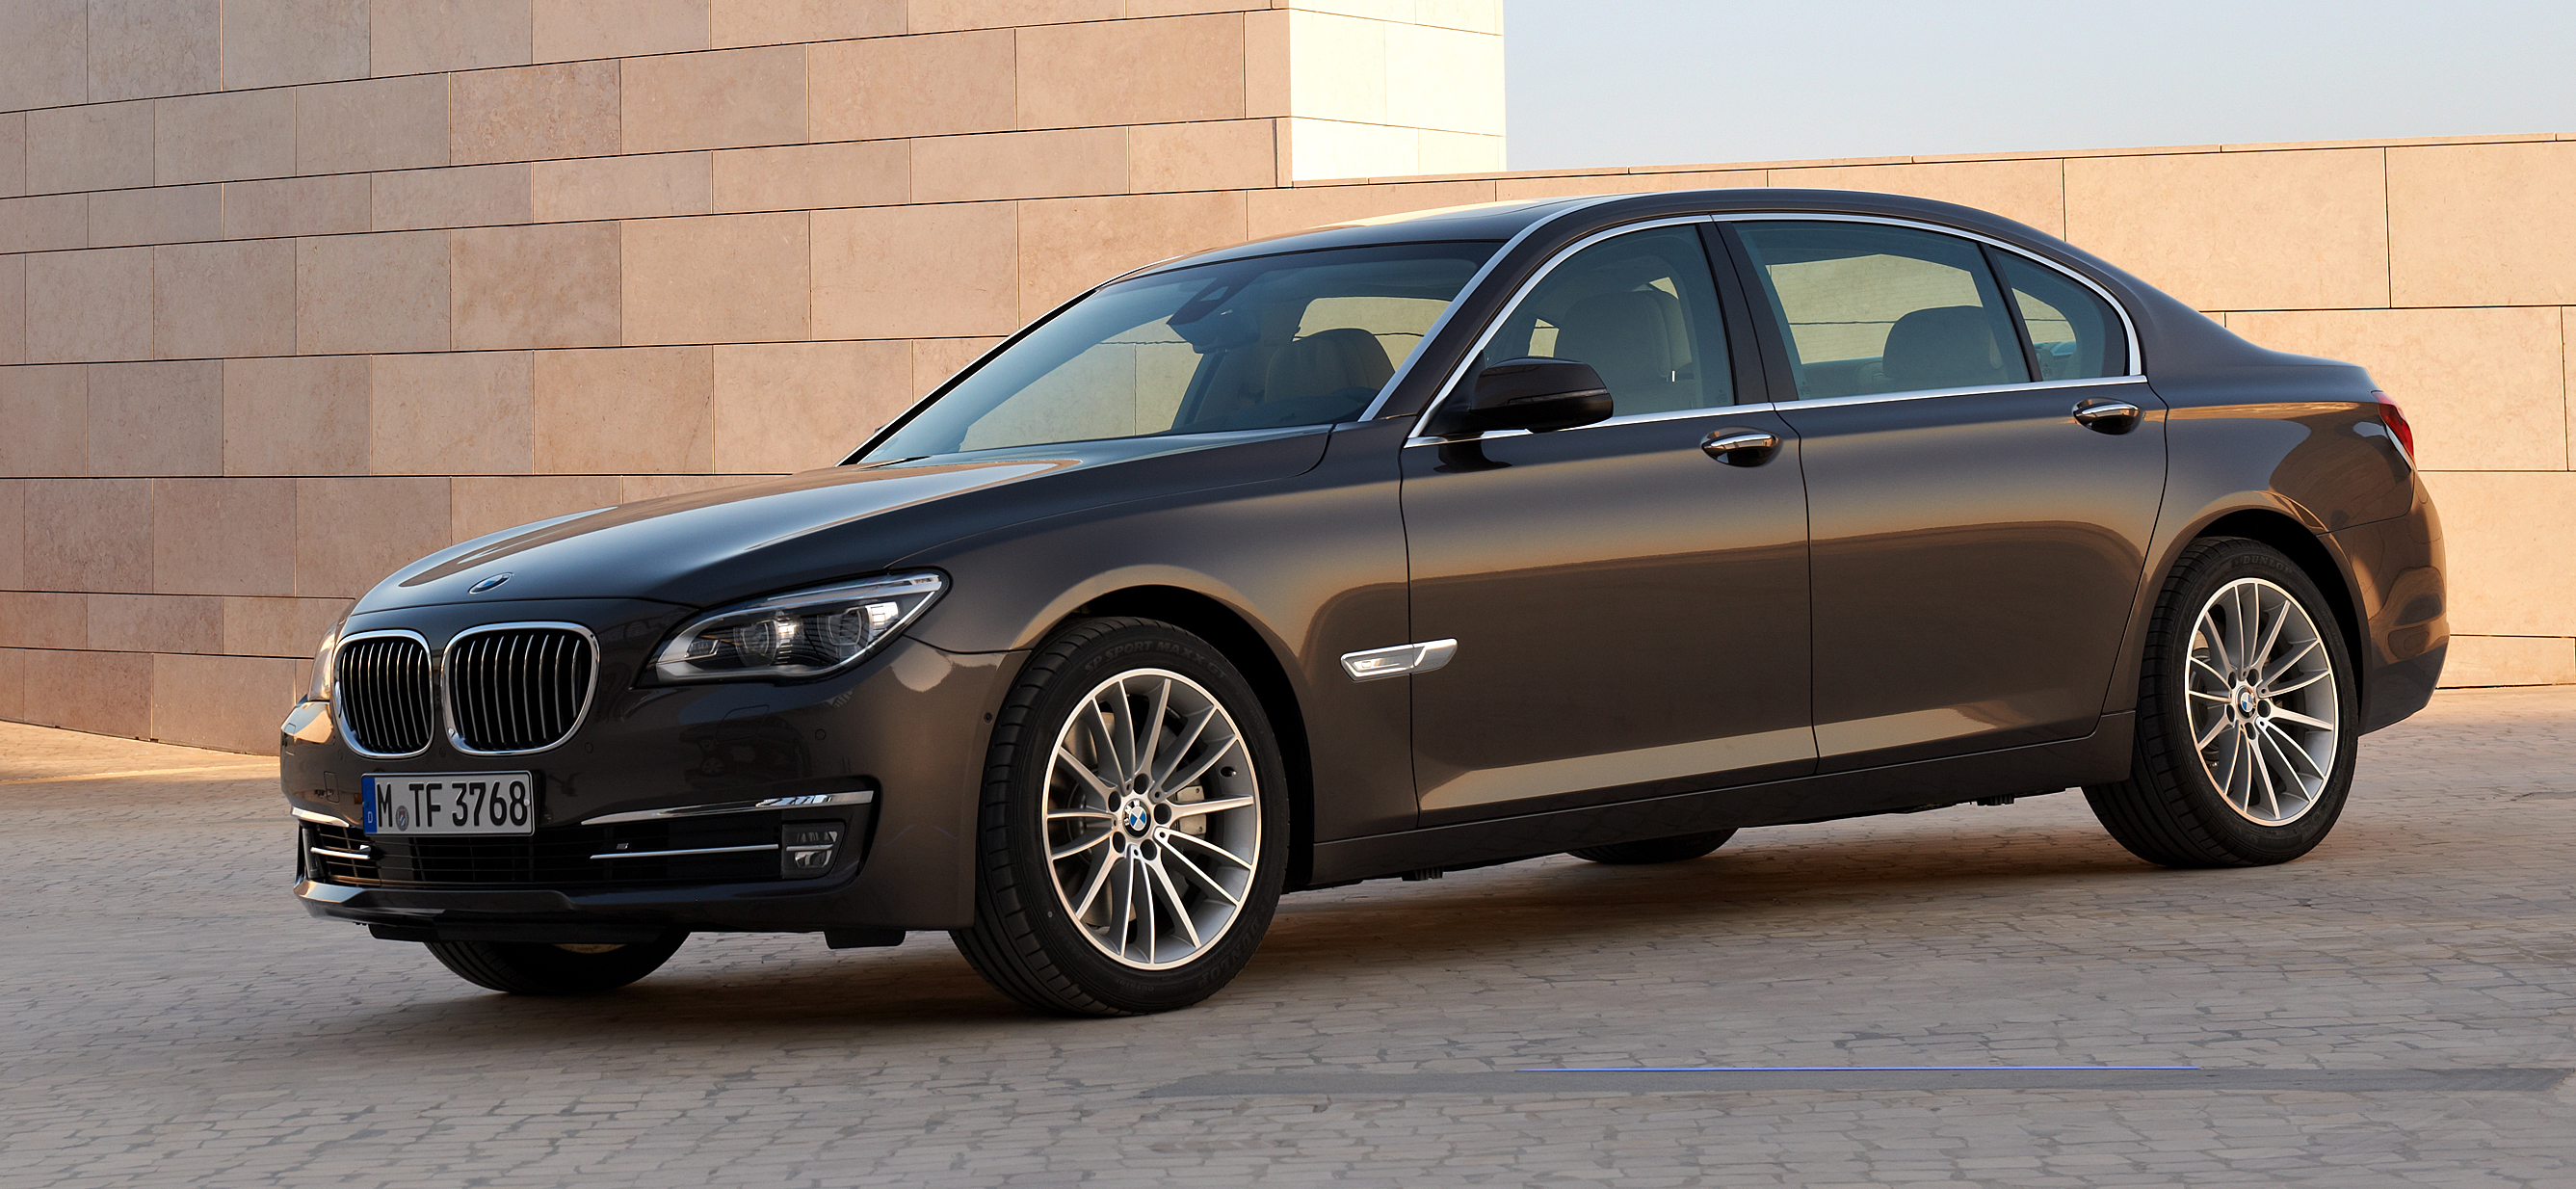 2014 bmw 7 series lci 730li and 740li updated in malaysia with new driver assist features